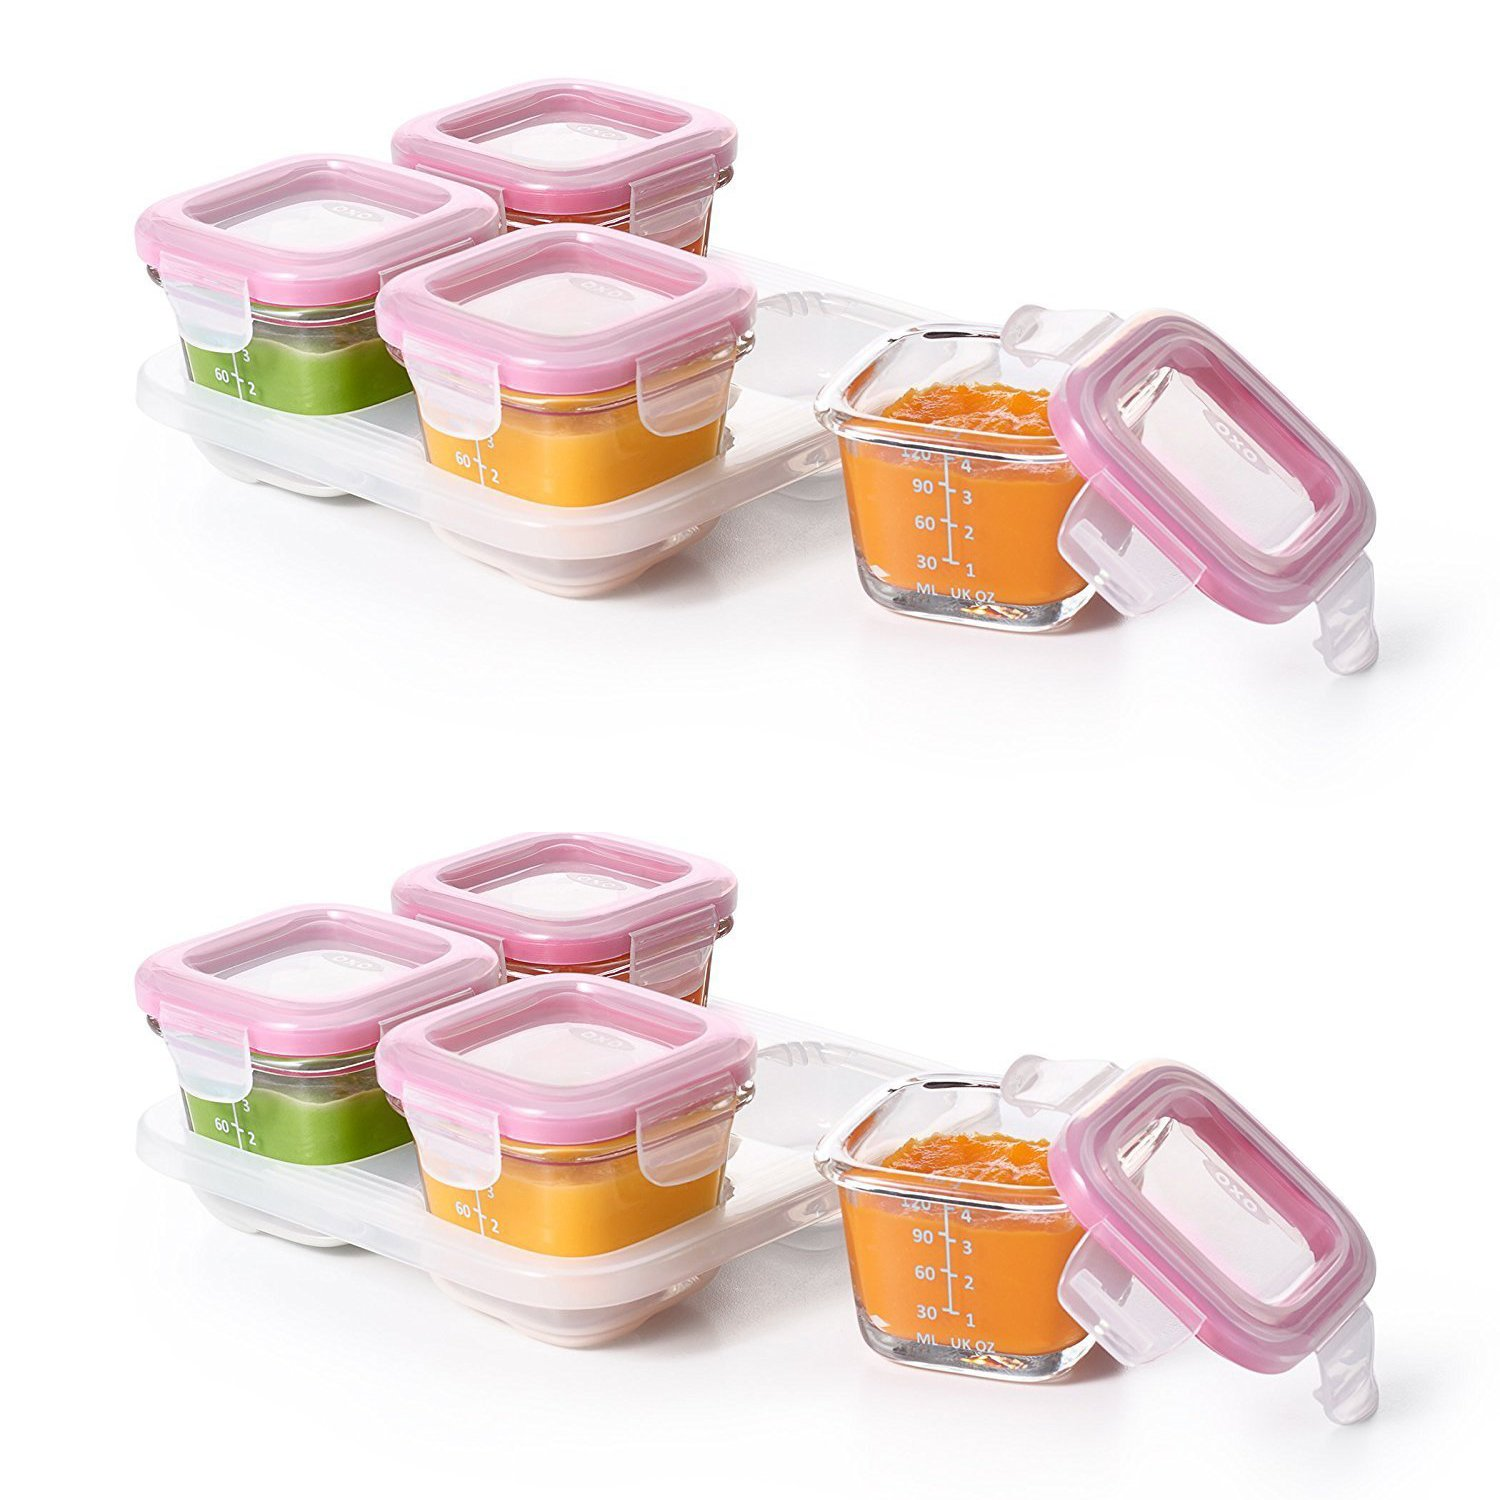 OXO Tot Glass Baby Blocks Food Storage Containers - 4 oz, Pink. 2 Pack